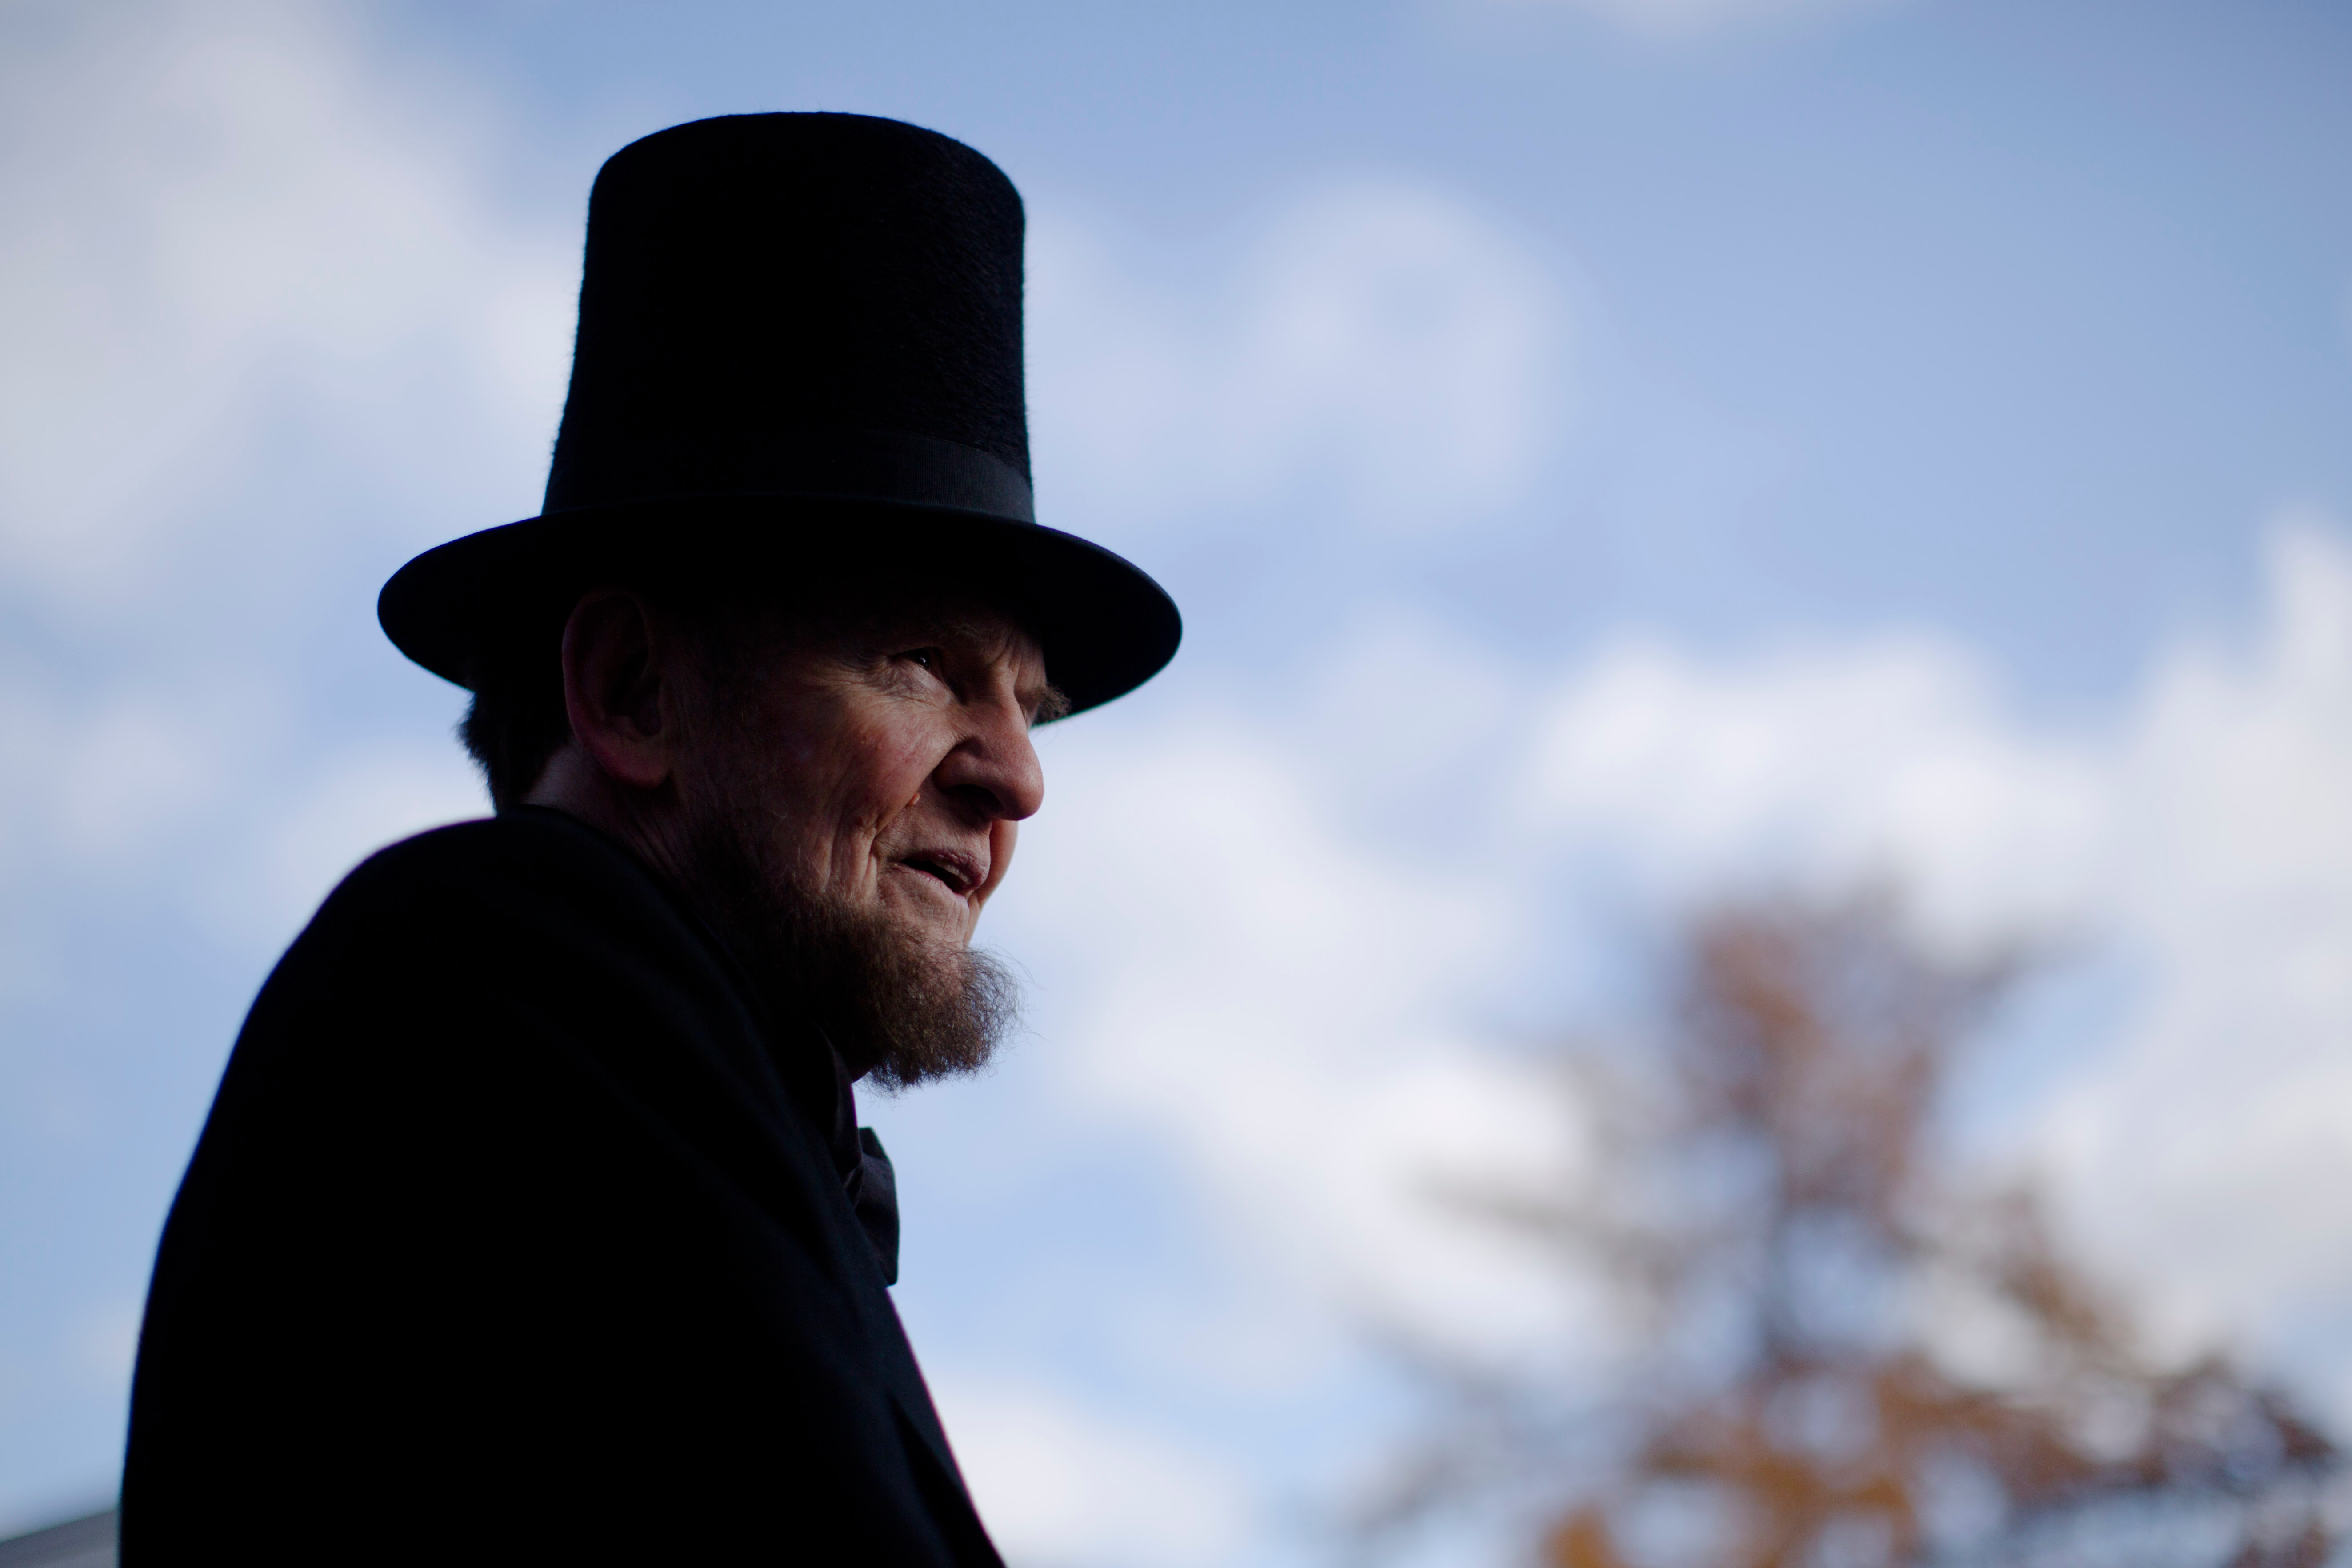 James Getty, portraying President Abraham Lincoln, stands before a ceremony commemorating the 150th anniversary of the dedication of the Soldiers National Cemetery and President Abraham Lincoln